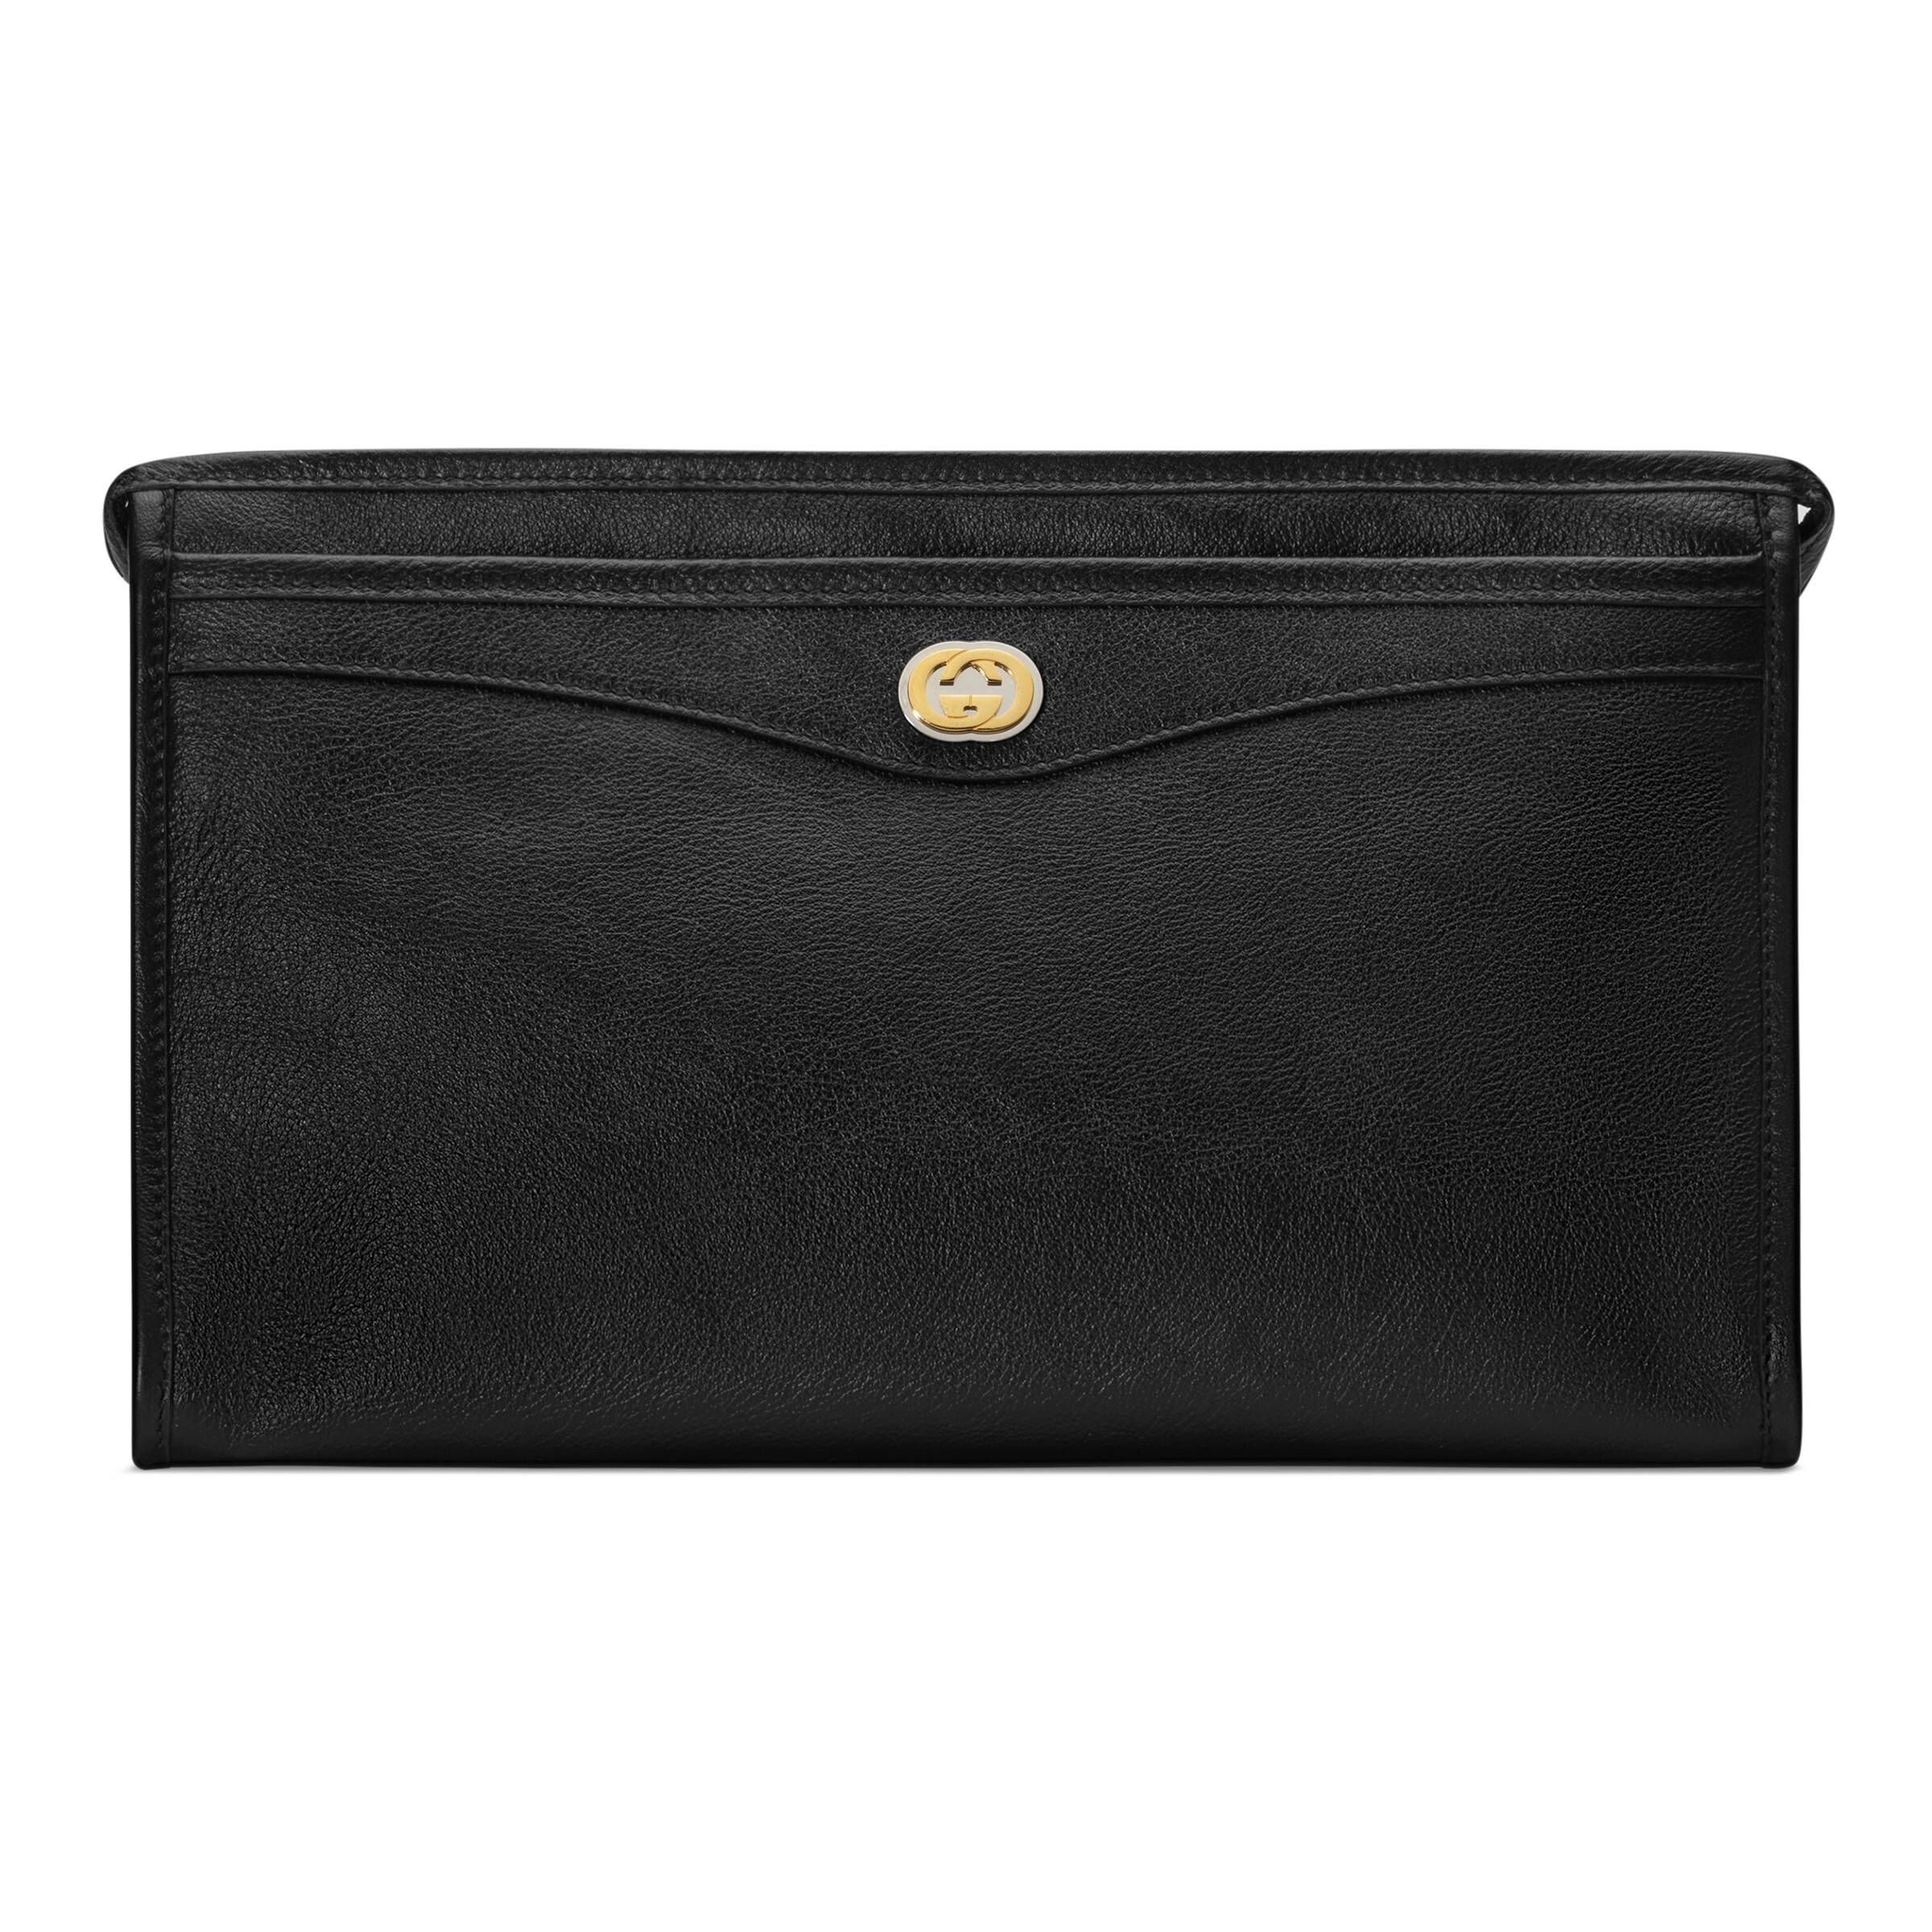 c35733ba3cb7 GUCCI POUCH WITH INTERLOCKING G. #gucci | Gucci in 2019 | Gucci ...